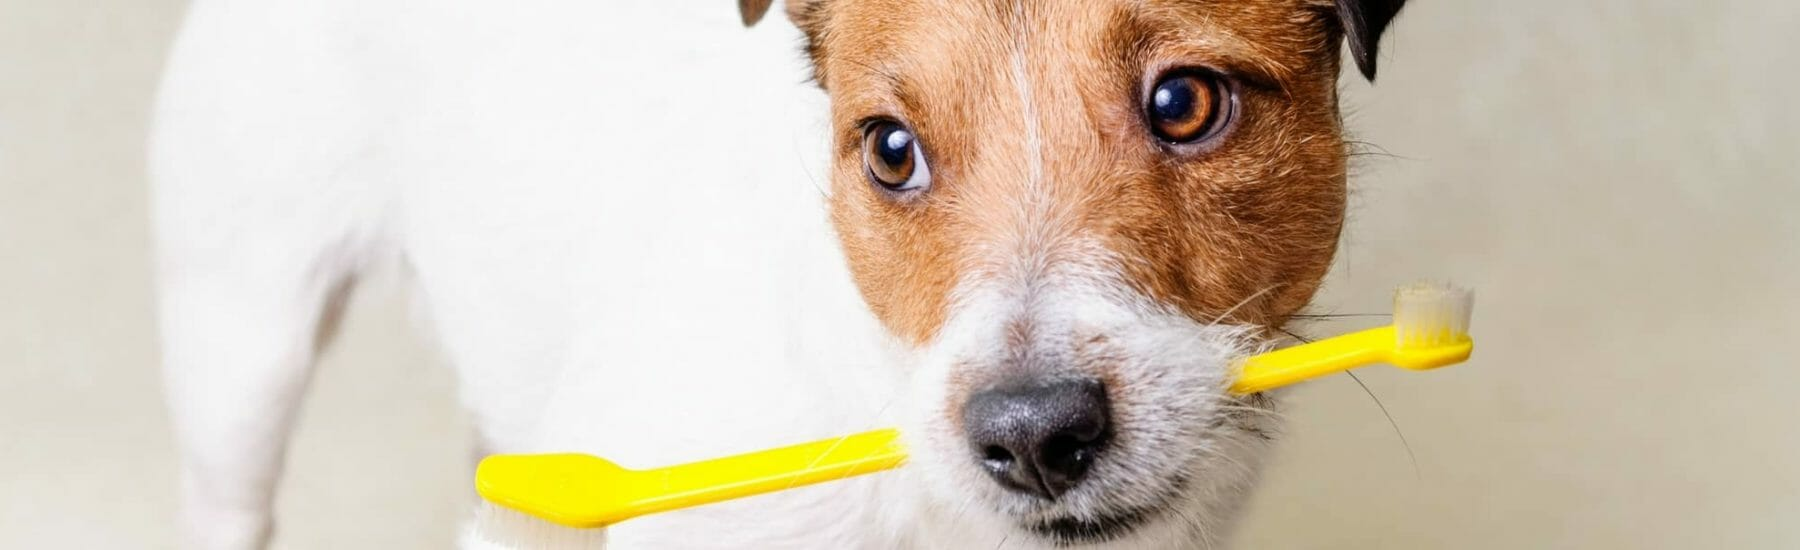 White and brown dog with yellow toothbrush in mouth